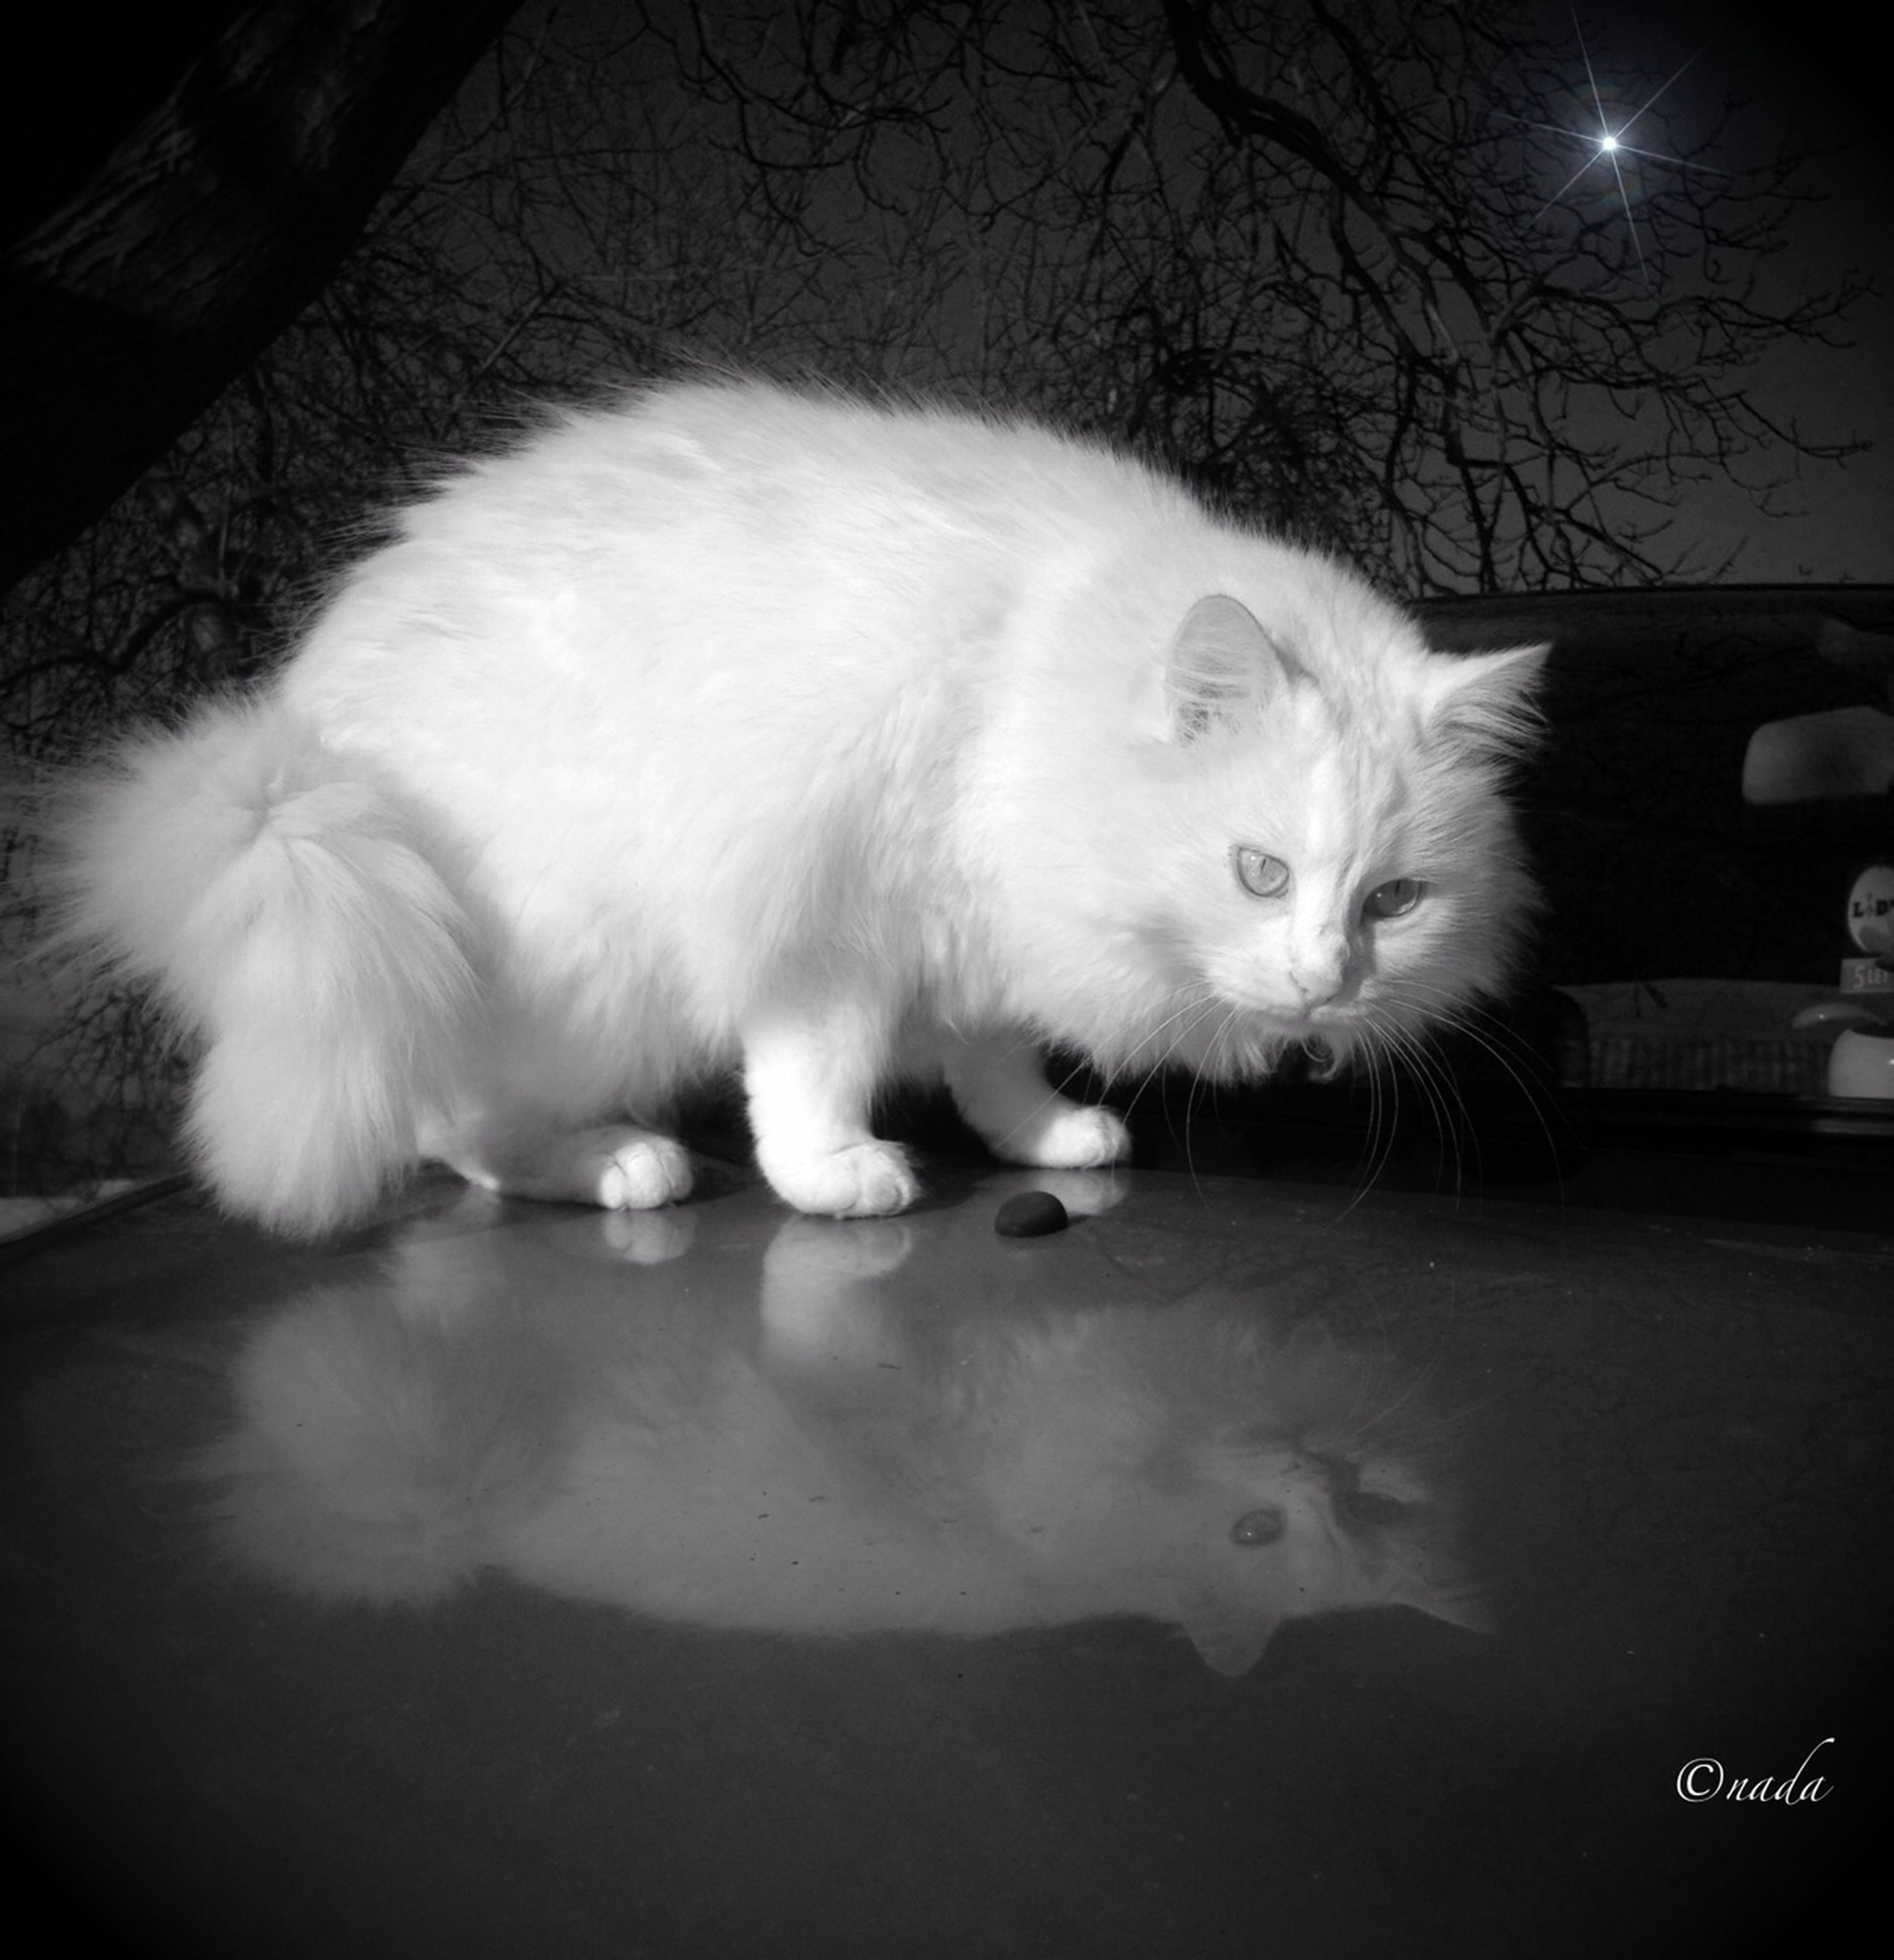 animal themes, one animal, pets, domestic cat, cat, domestic animals, mammal, indoors, feline, night, relaxation, whisker, sitting, white color, close-up, no people, full length, sleeping, looking away, cute